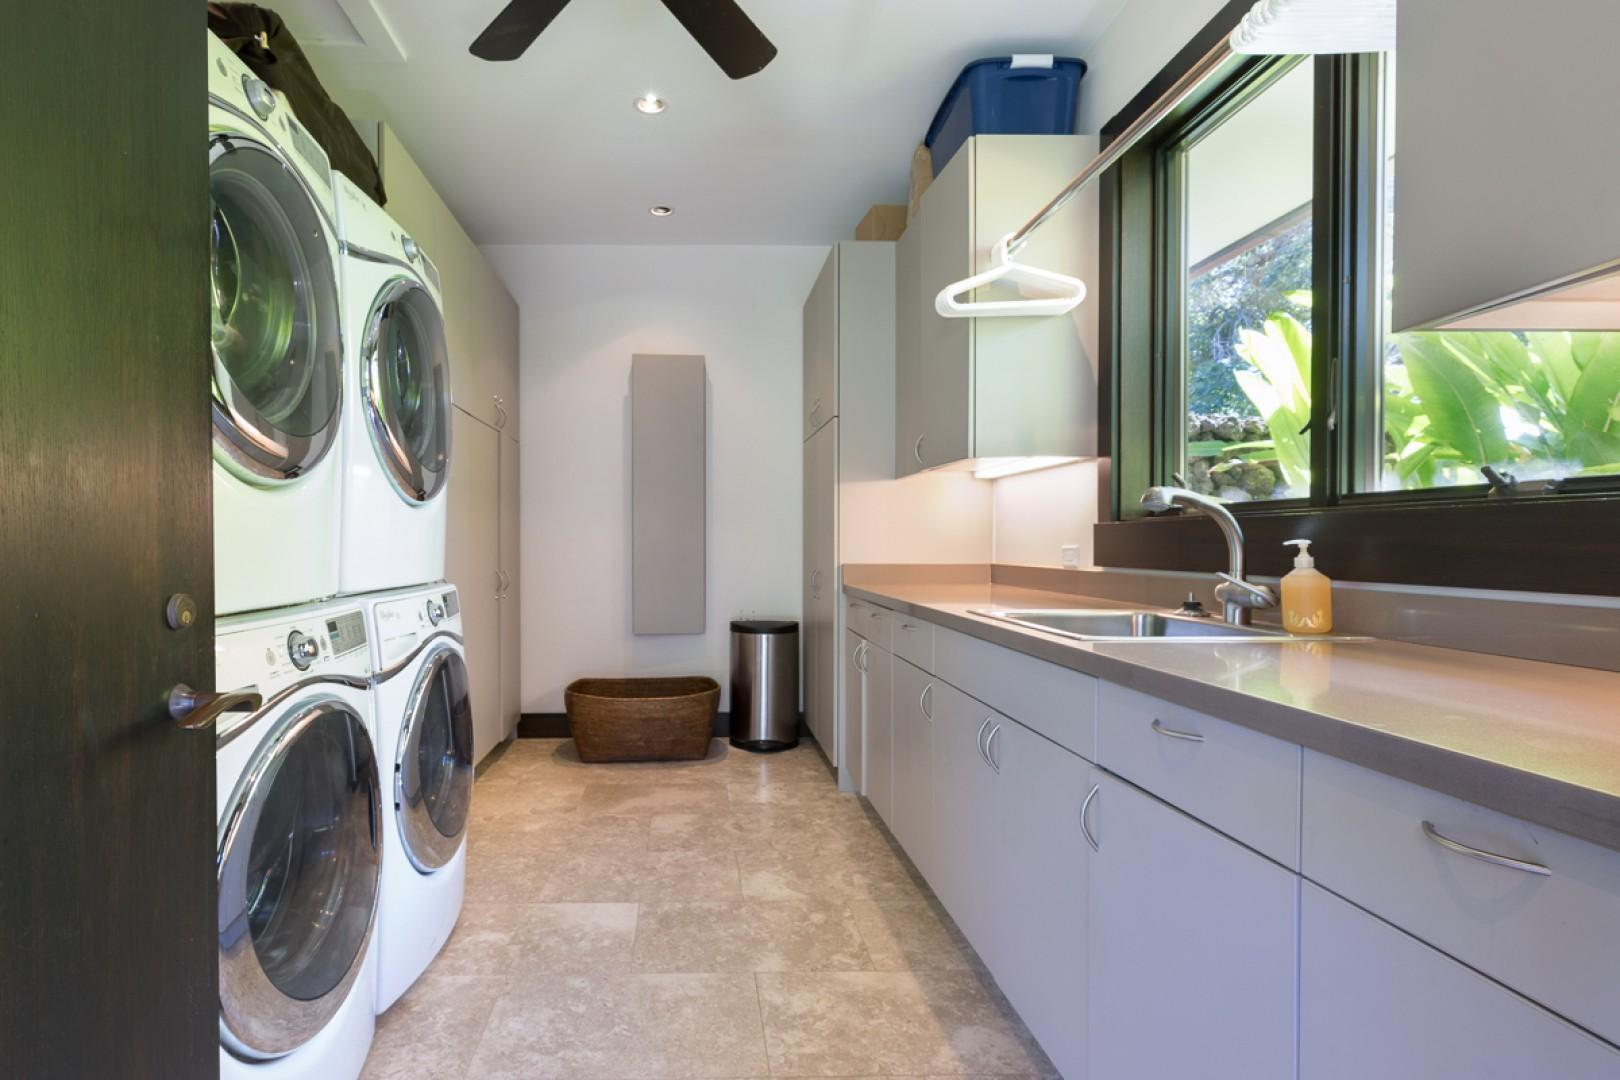 Two washers and two dryers